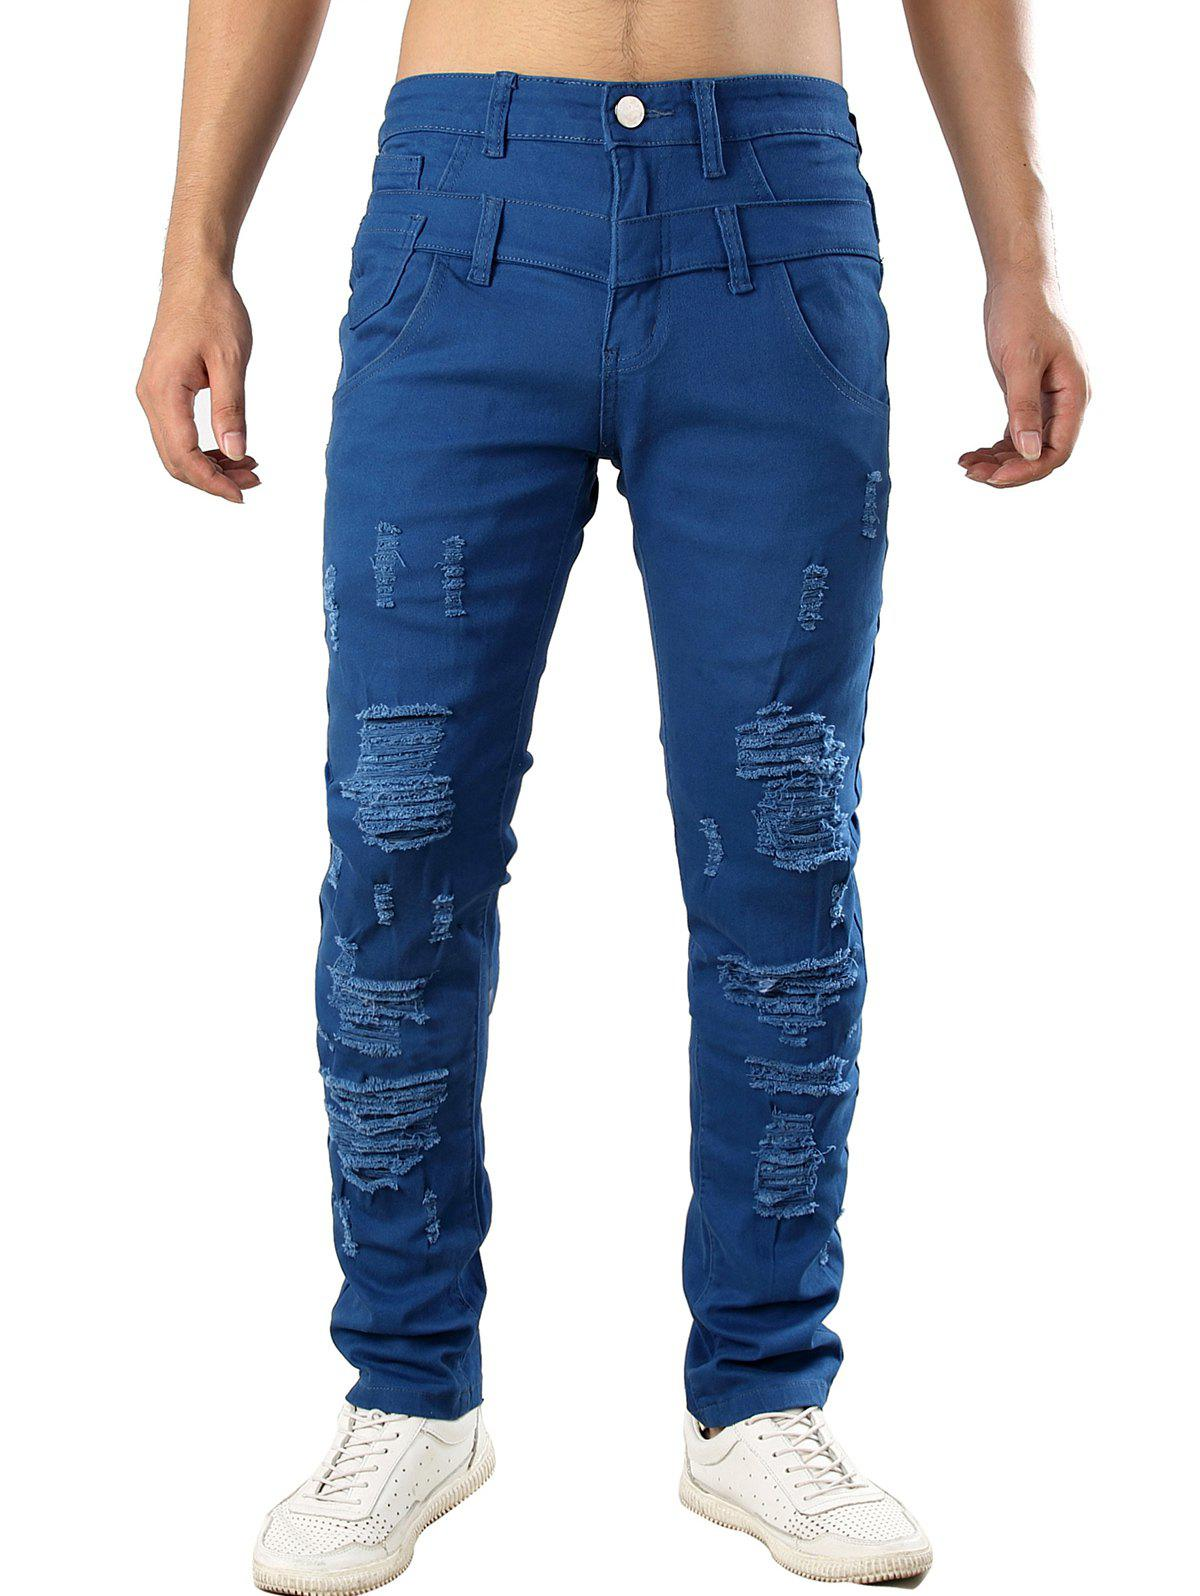 Zip Fly Design Casual Ripped Jeans - BLUE 40